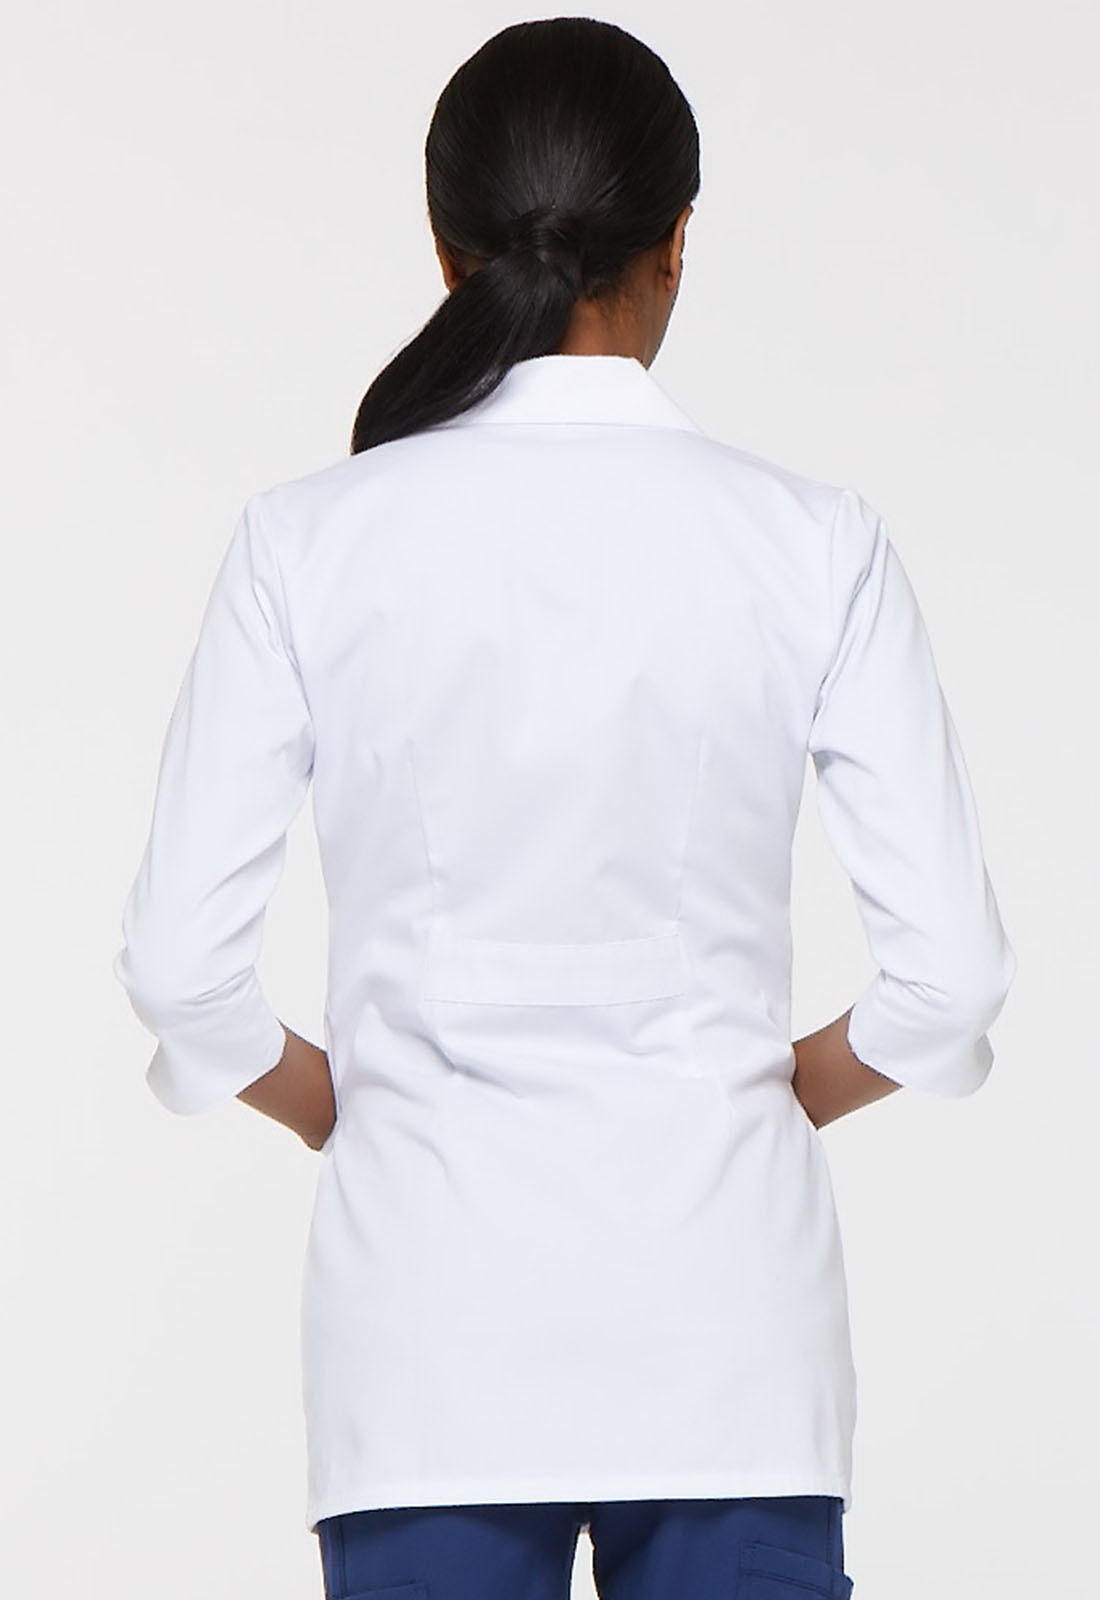 https://medcloth.by/images/stories/virtuemart/product/82402_dwhz_back-2.jpg